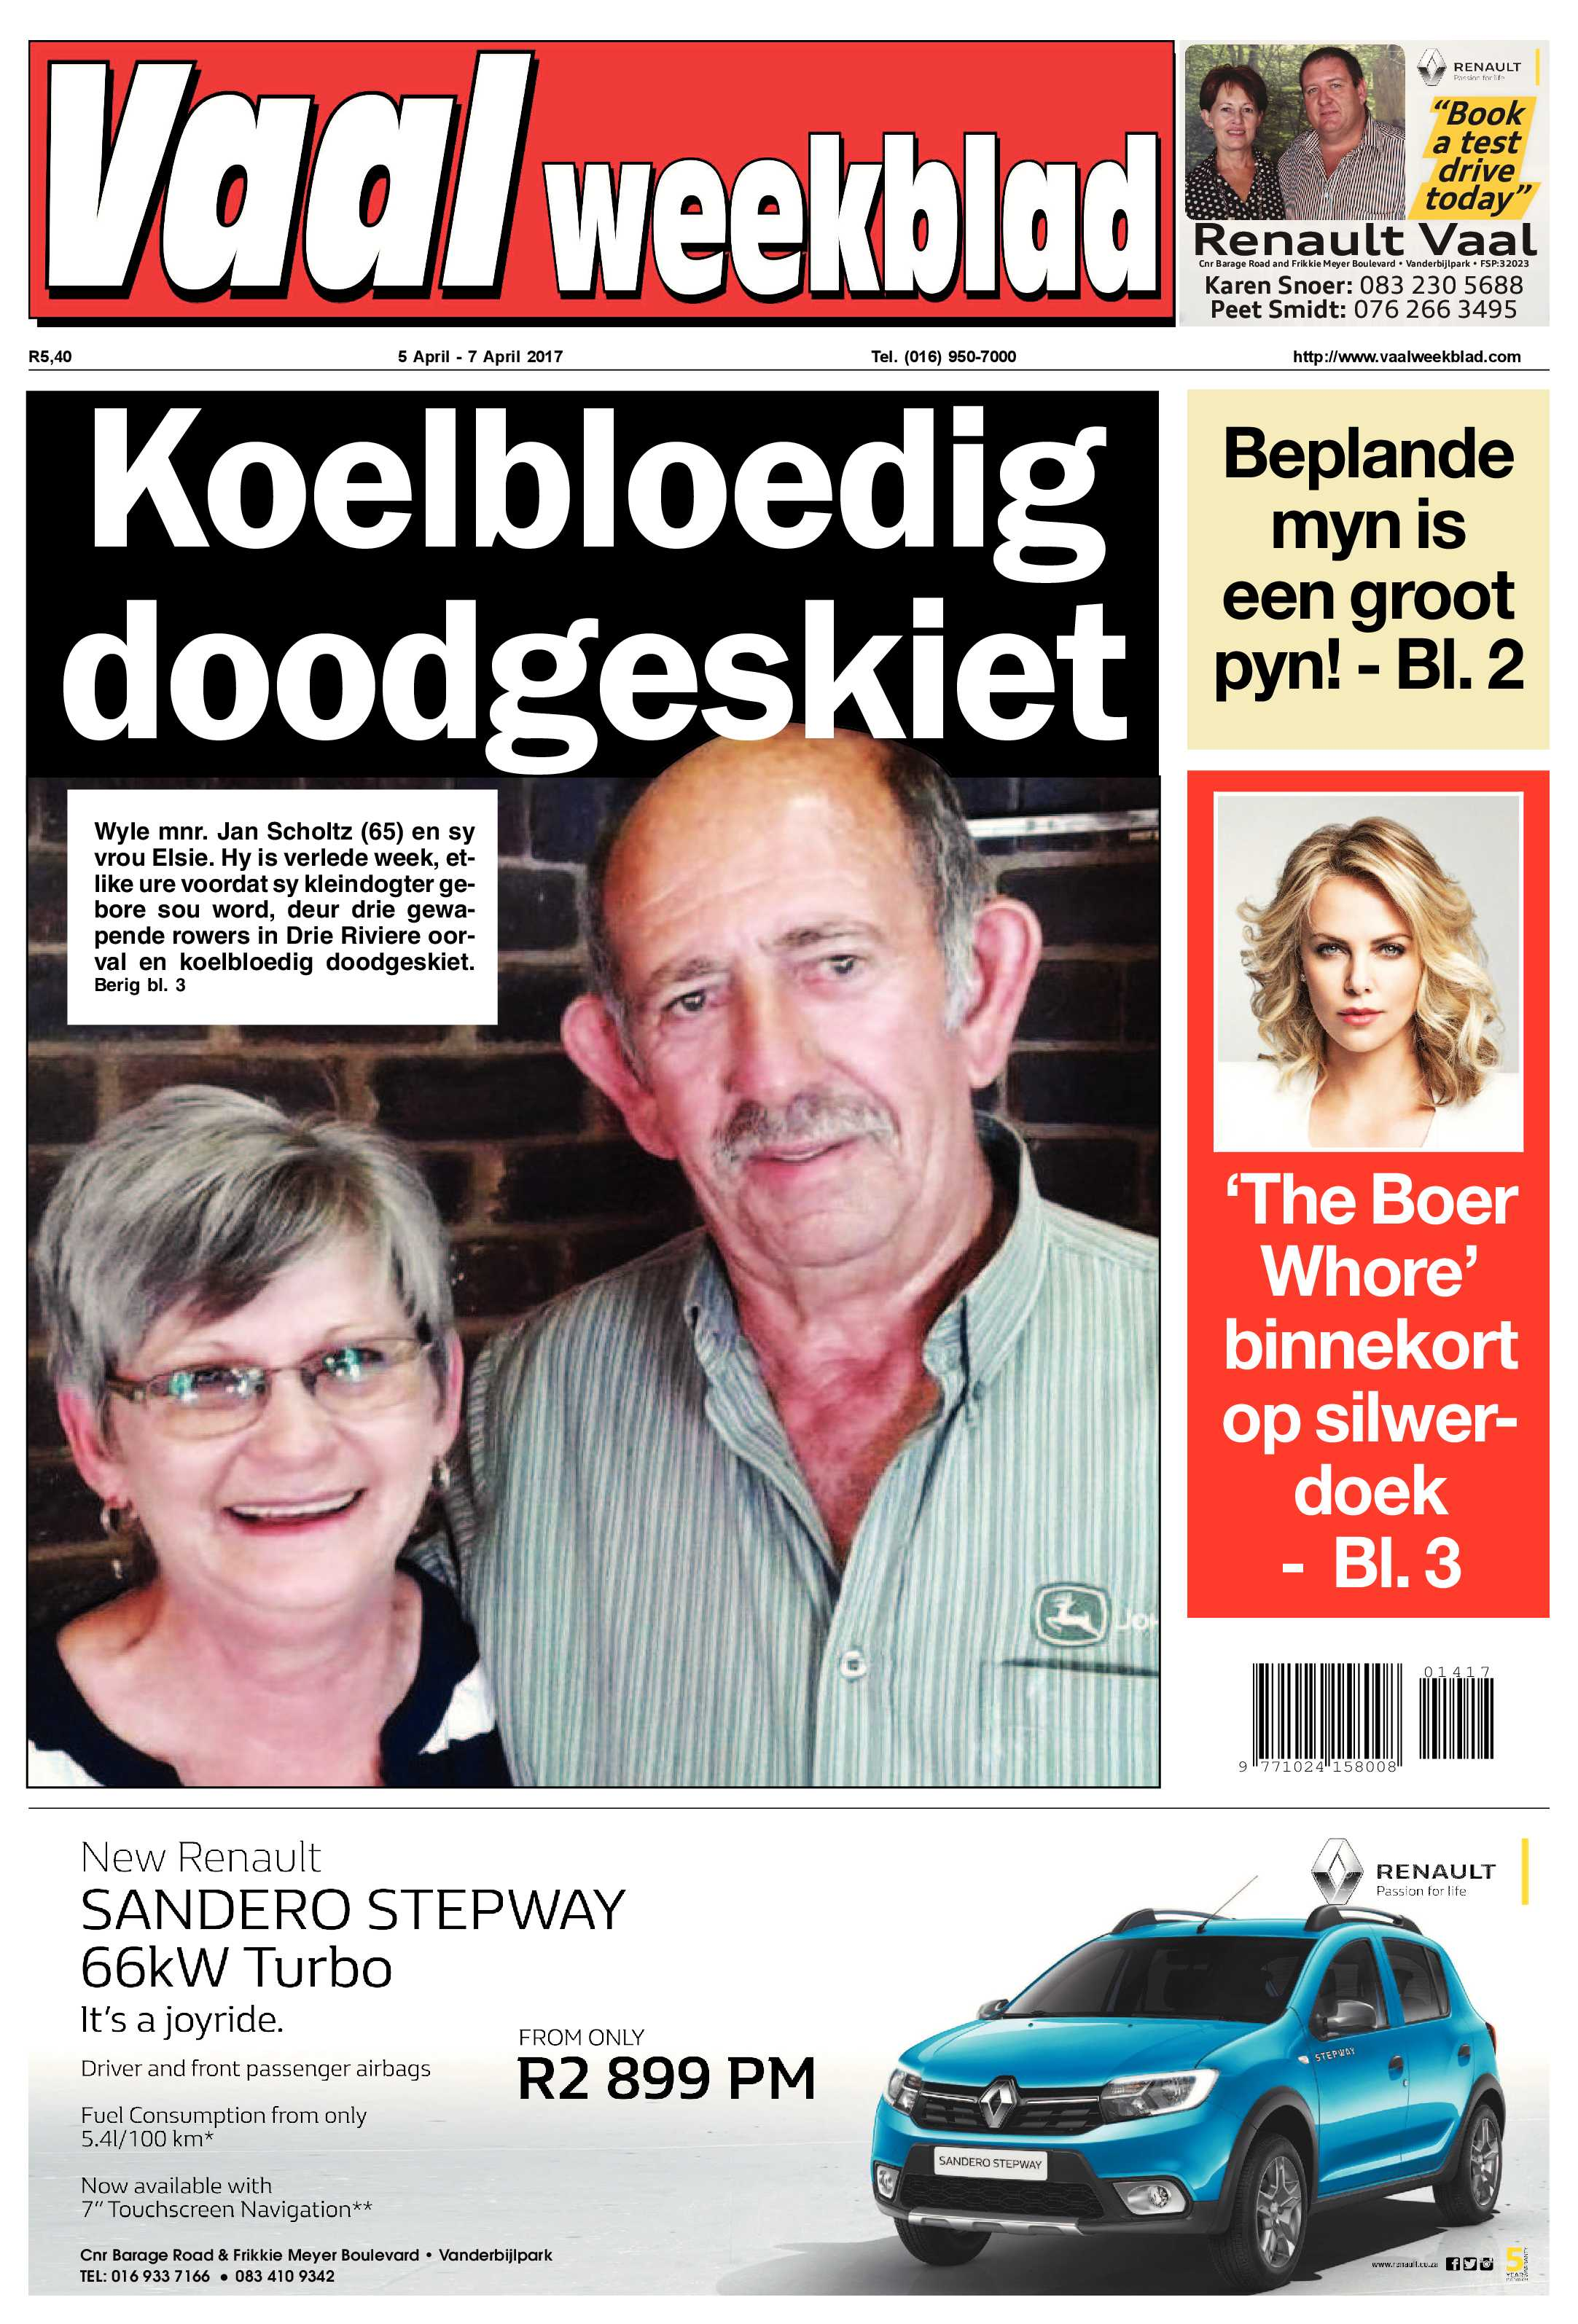 vaalweekblad-5-7-april-2017-2-epapers-page-1